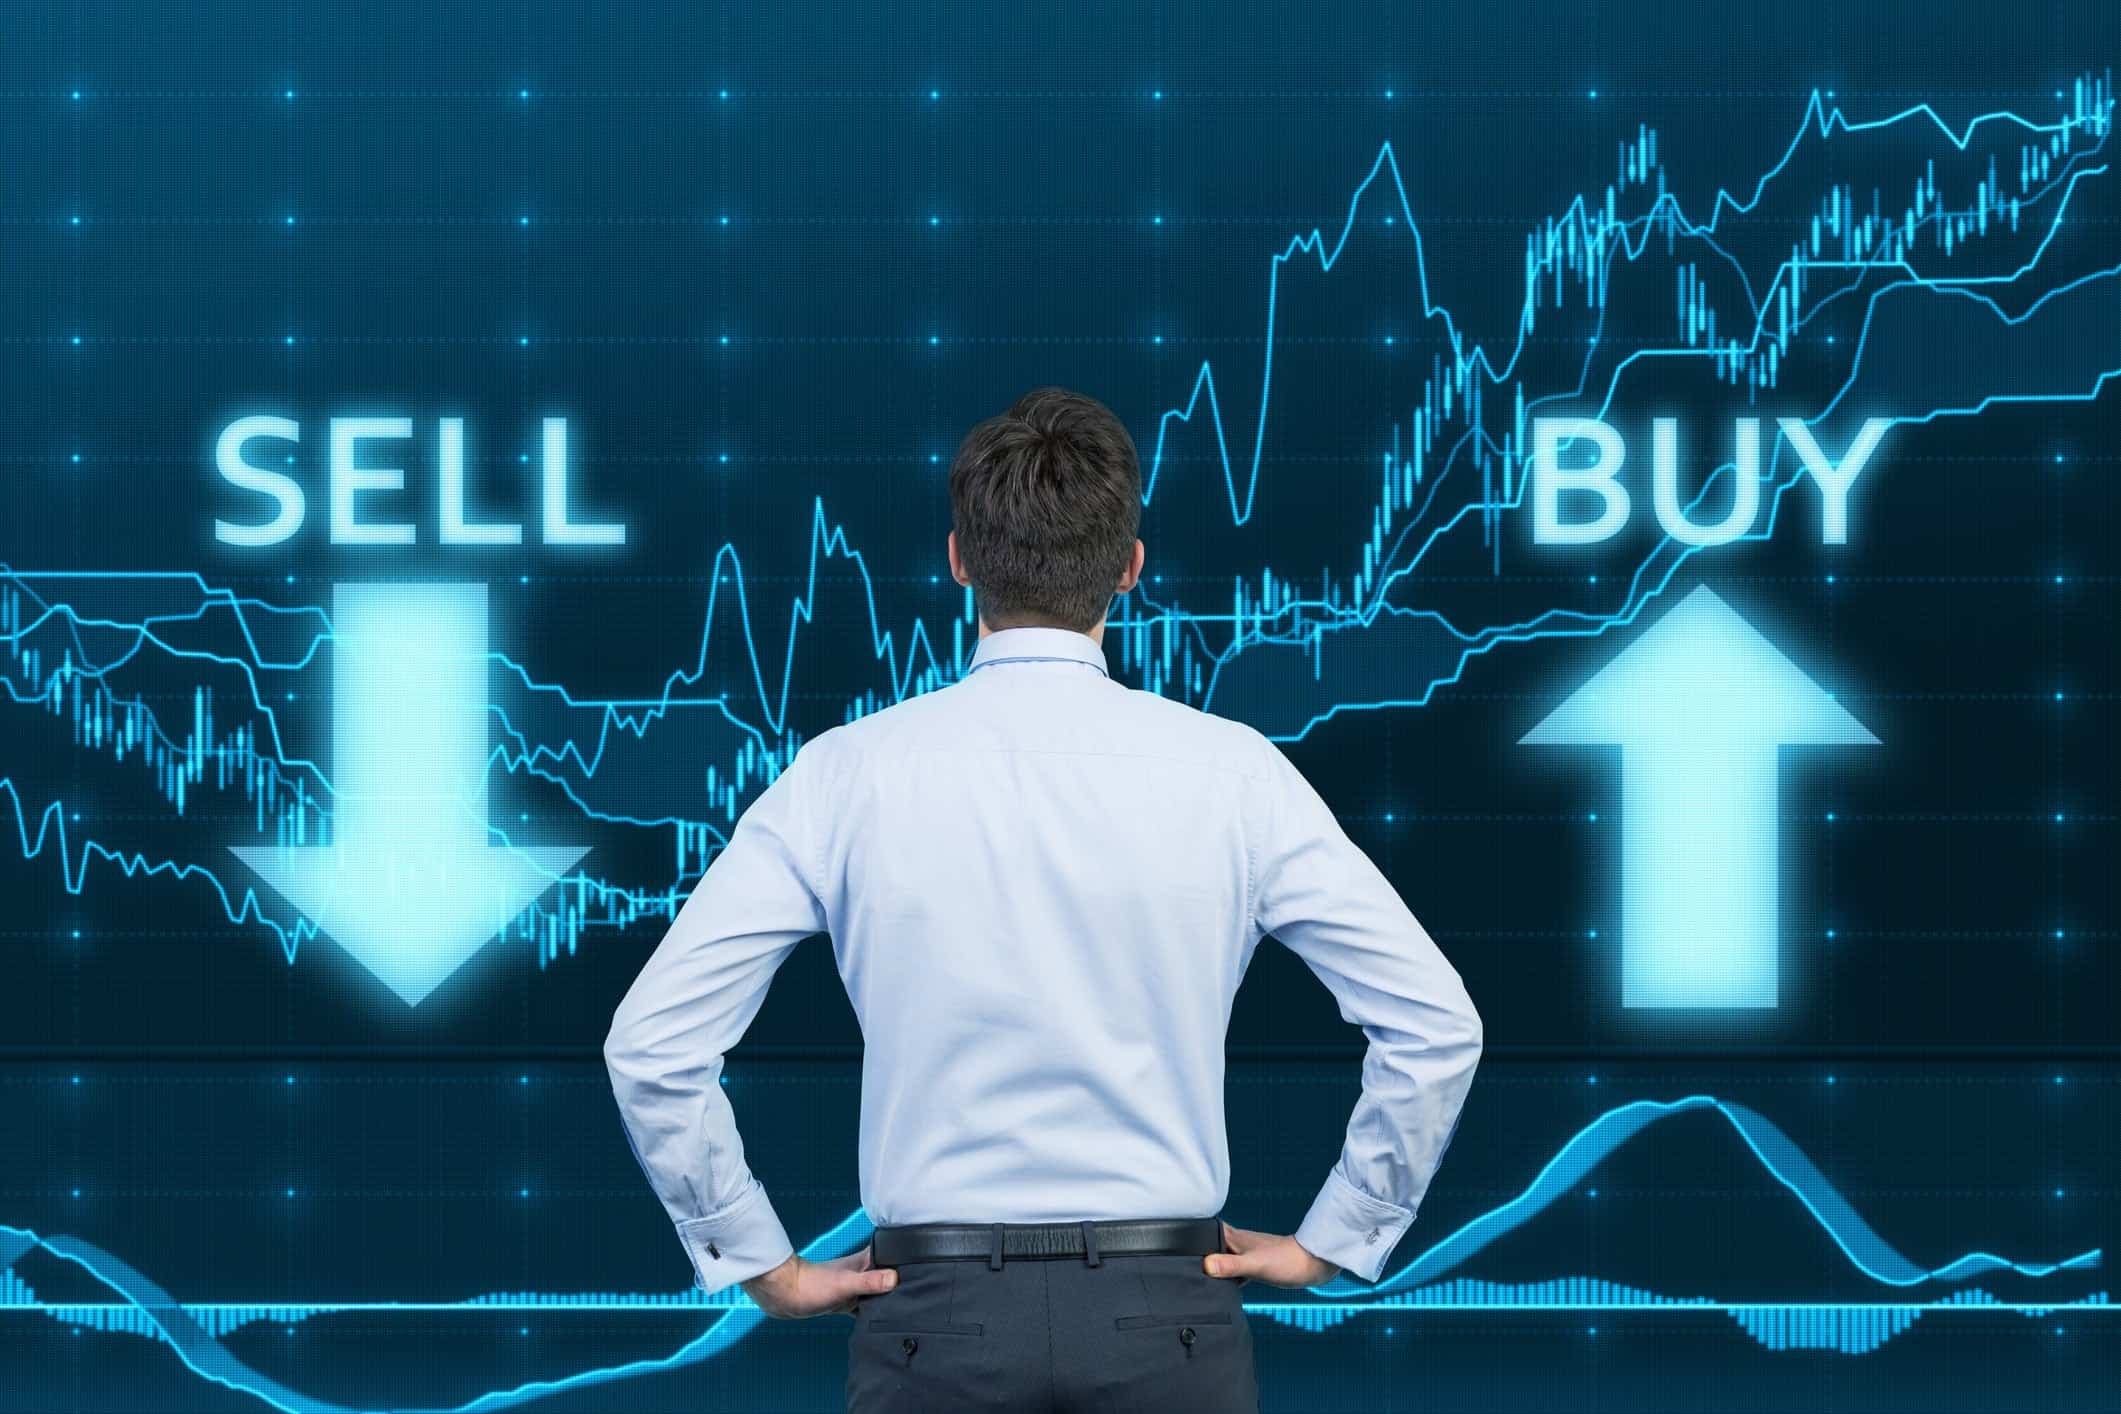 Do You Know When To Sell Stocks? 4 TIPS TO KNOW.